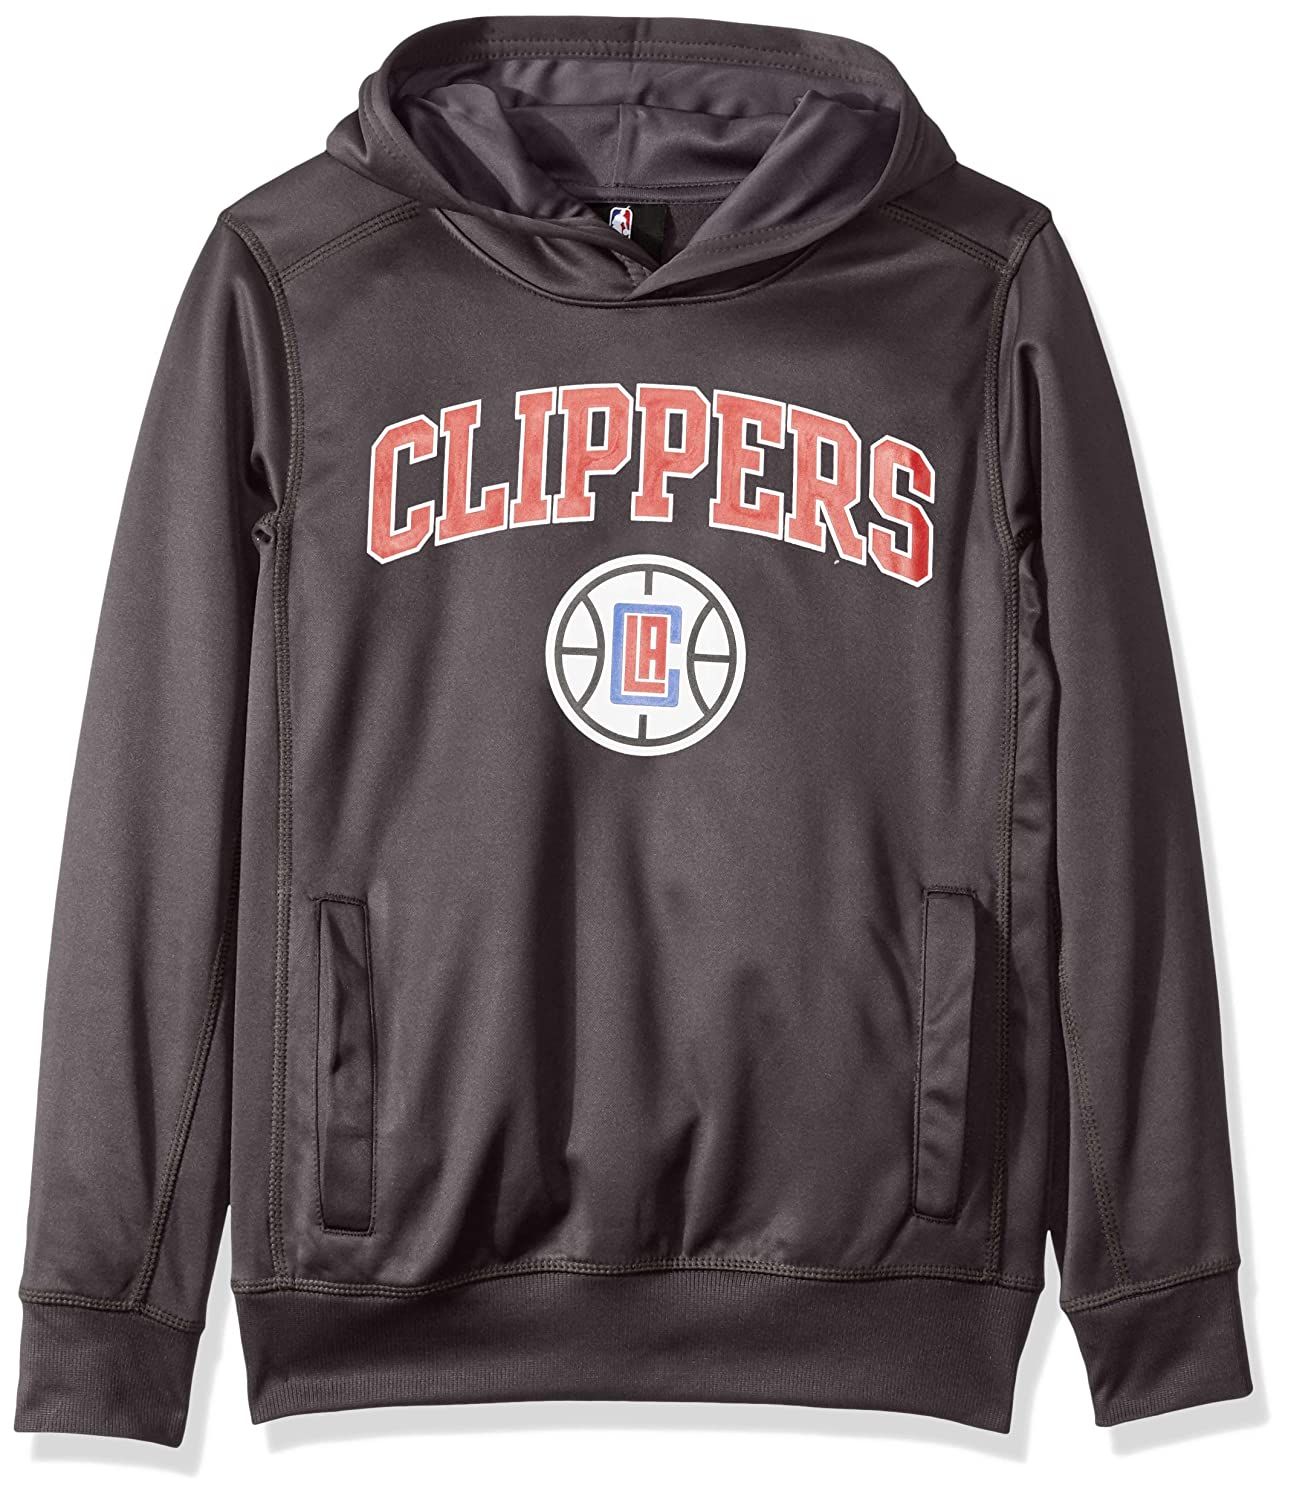 Outerstuff NBA NBA Youth Boys Los Angeles Clippers Loose Ball Performance Hoodie 14-16 Charcoal Youth Large